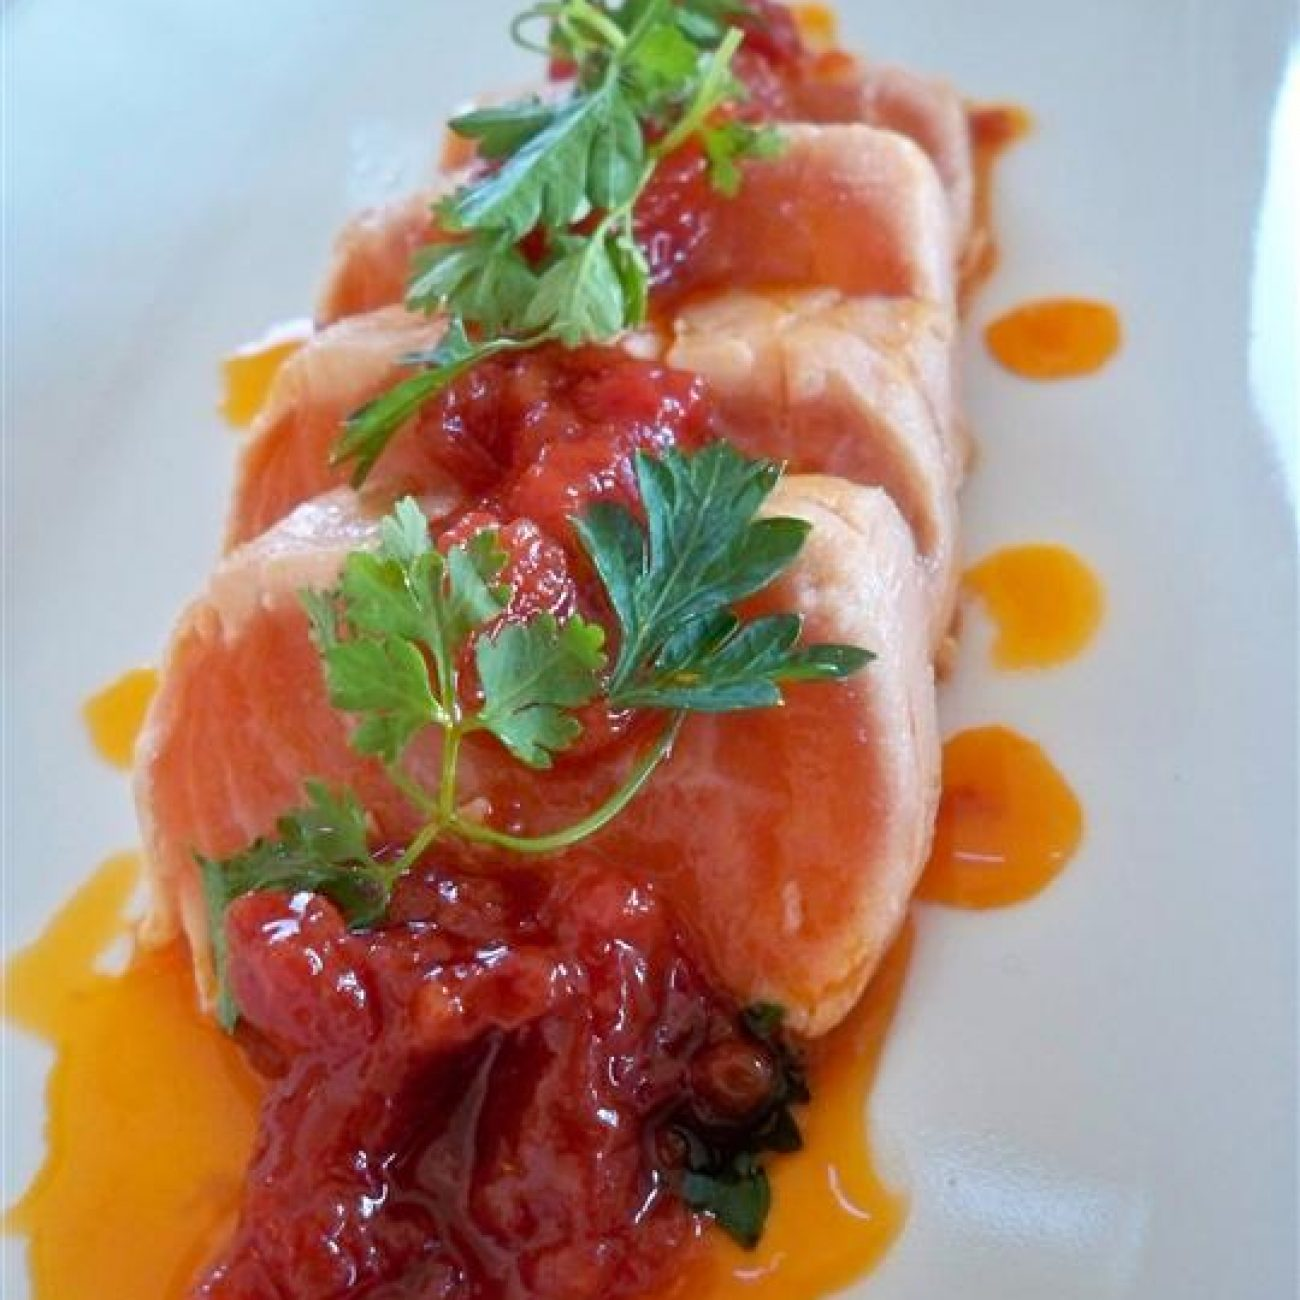 Seared Salmon with Tomato compote and fresh herbs